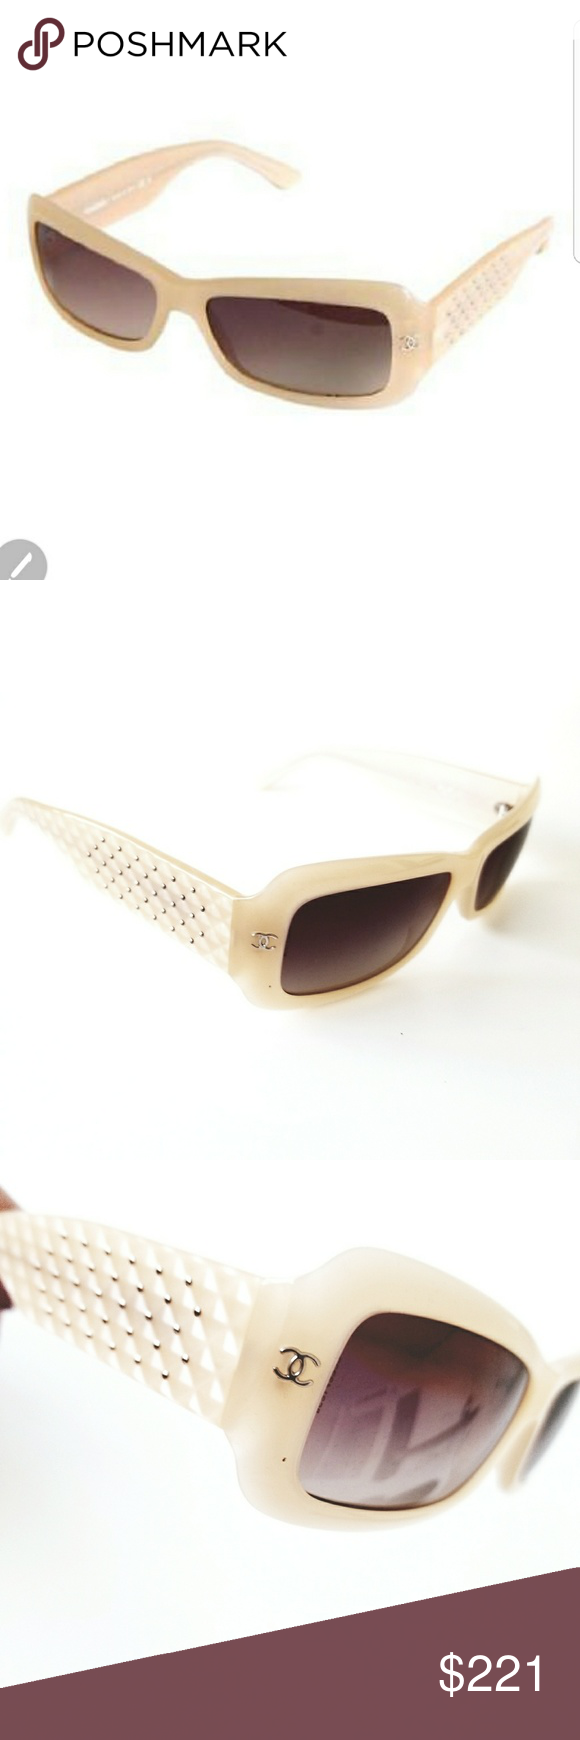 5eeaf4371c5e1 Chanel 5099 Sunglasses Quilted Rectangular Authentic Chanel Sunglasses 5099  C.646 13 beige quilted